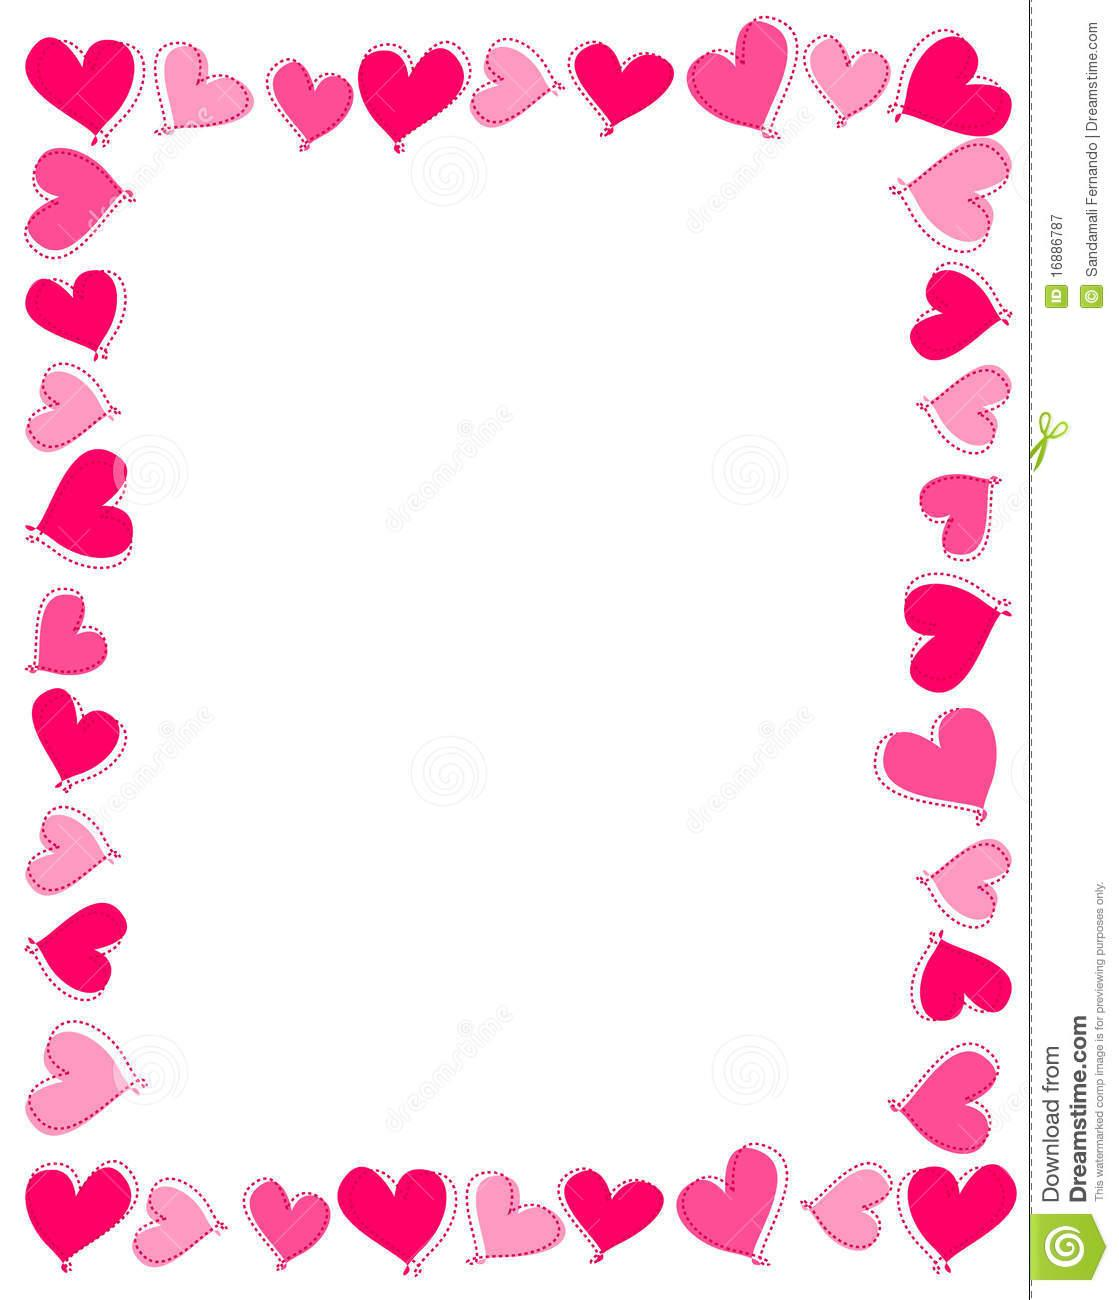 Pink Hearts Border Royalty Free Stock Photography Image 16886787.